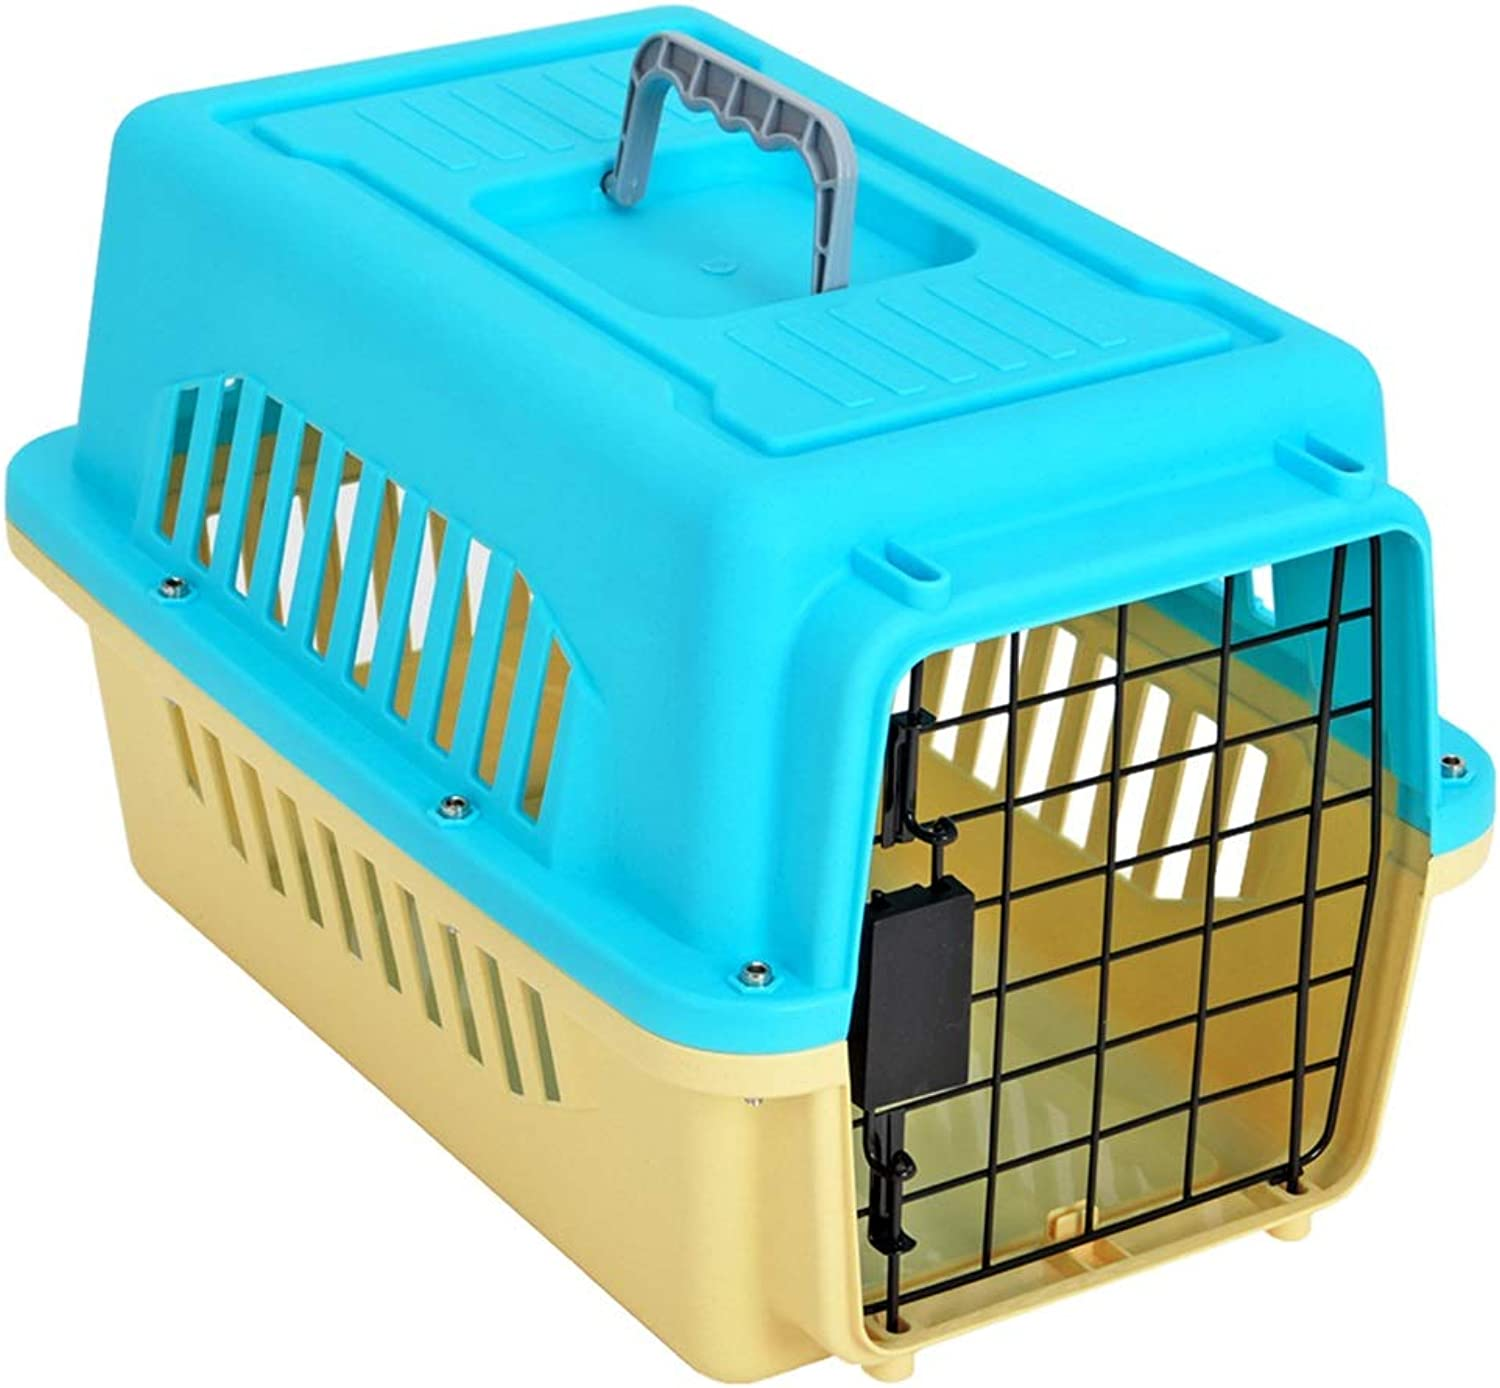 Playpens & Pens Pet cage pet air box small dog transport cage air transport check box Teddy portable out box cat supplies Pet Supplies (color   bluee, Size   50  33.7  31.4cm)